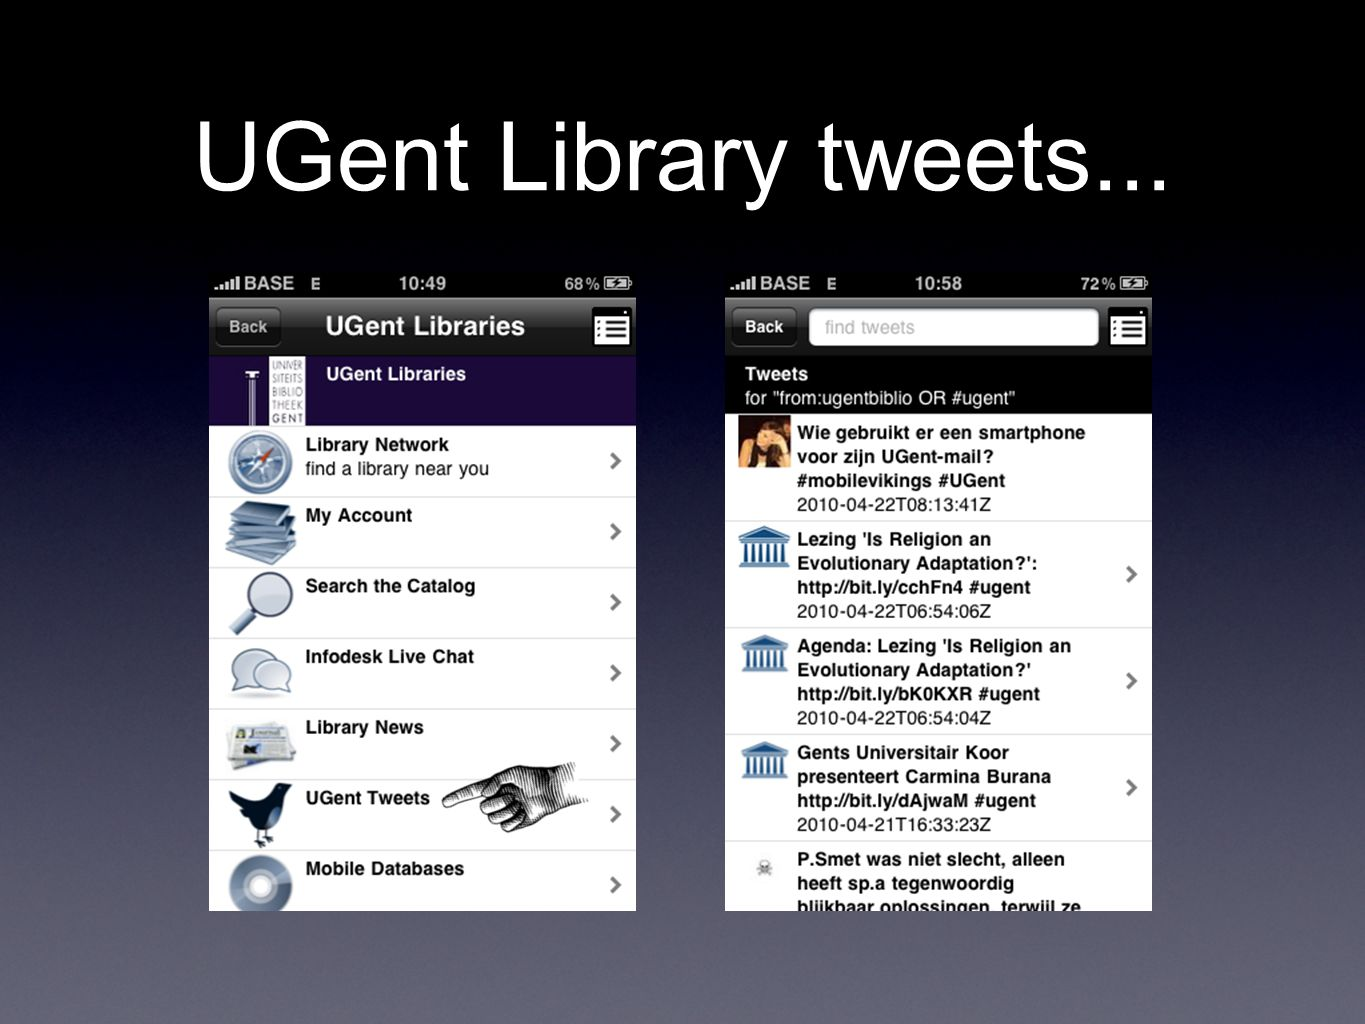 UGent Library tweets...